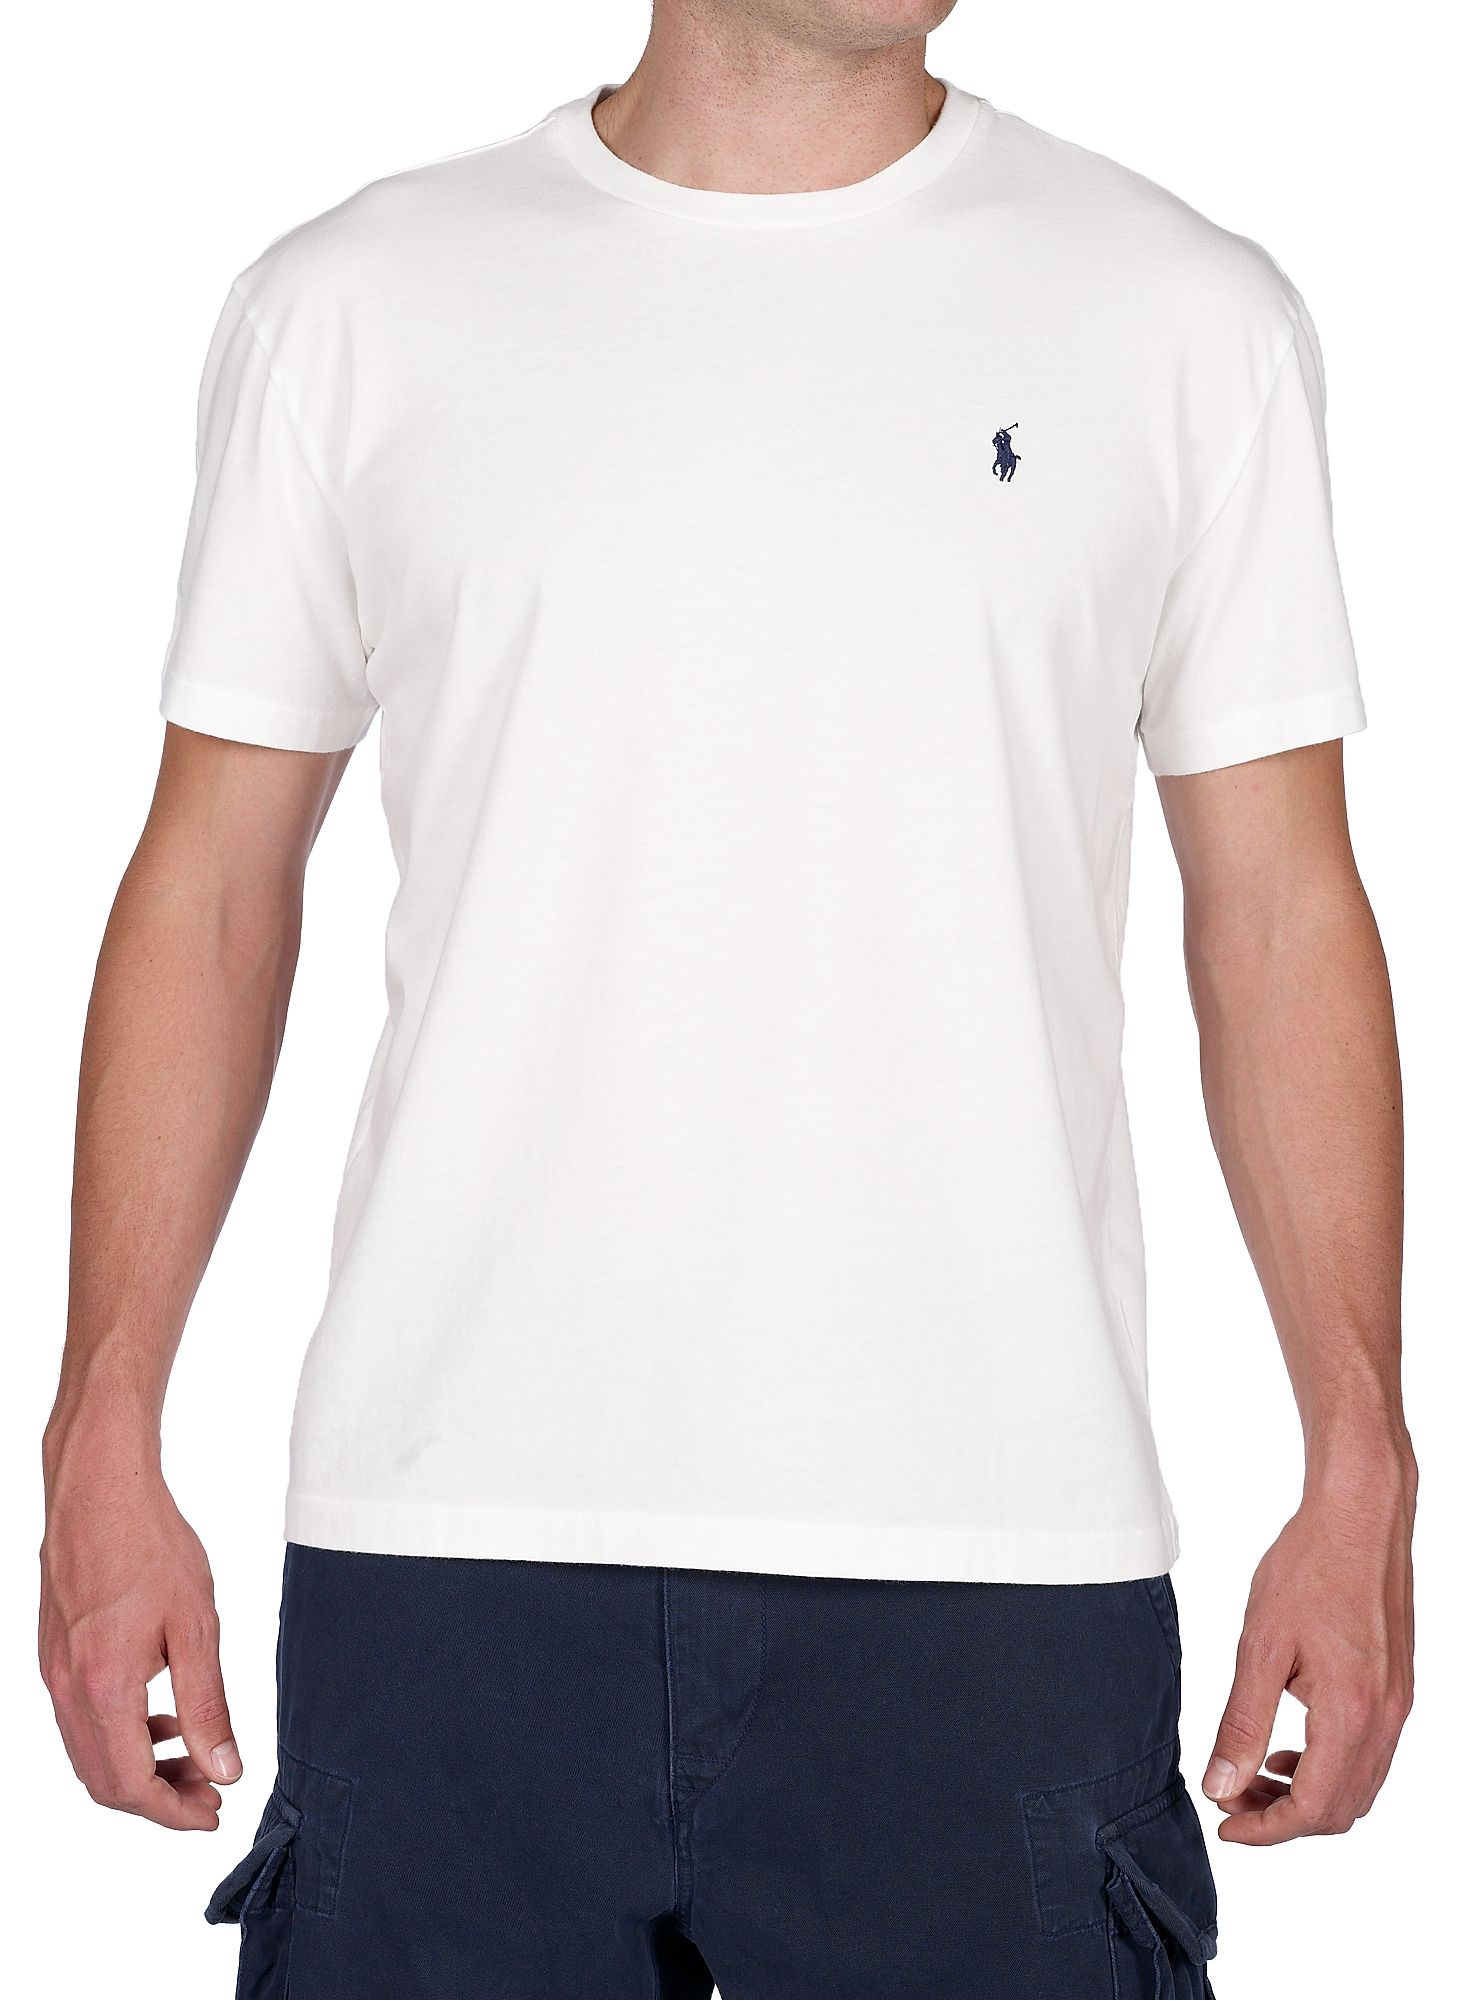 Ralph Lauren Regular fit polo T-shirt White product image